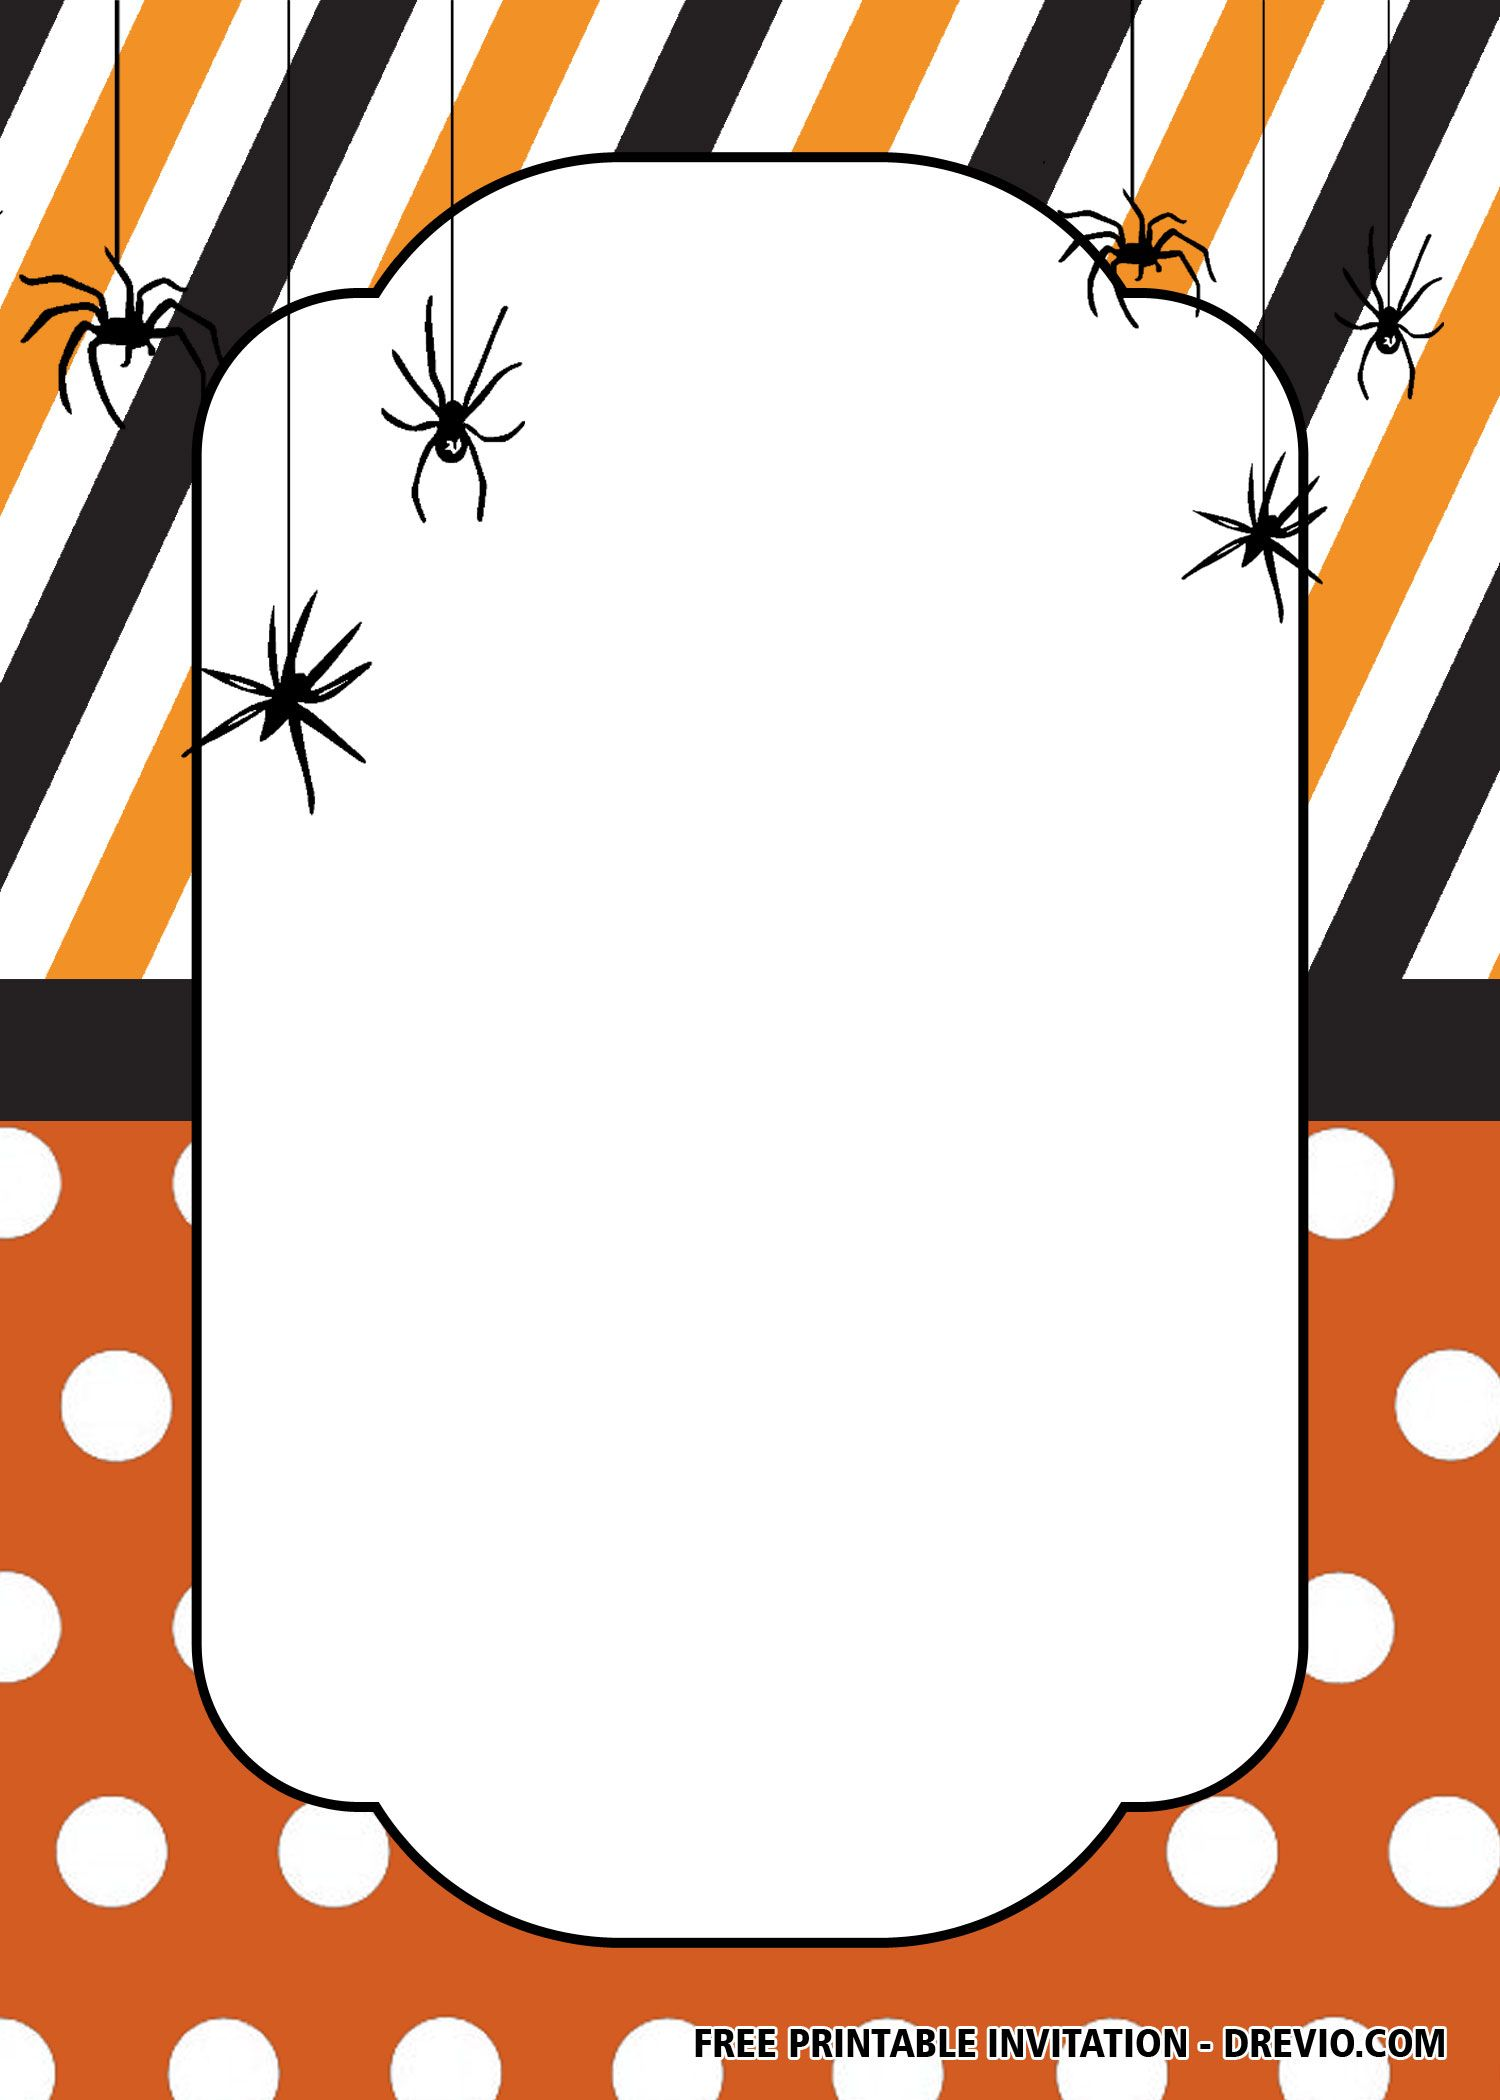 Free Printable Halloween Spider Party Invitation Templates Free Printable Halloween Invitations Free Halloween Invitations Printable Halloween Party Invitations